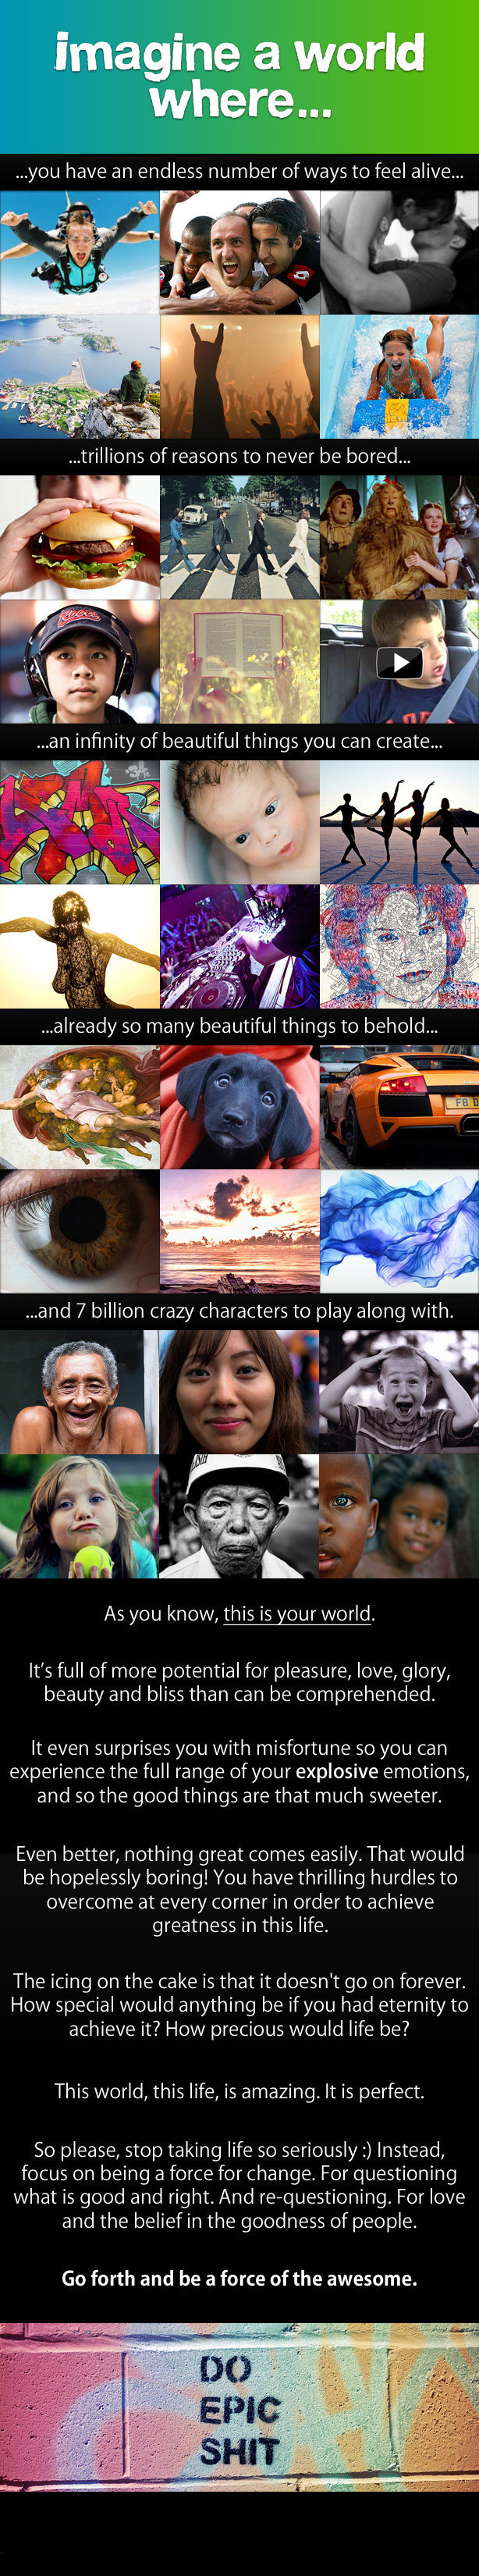 imagine - some of the most powerful inspirational quotes and pictures